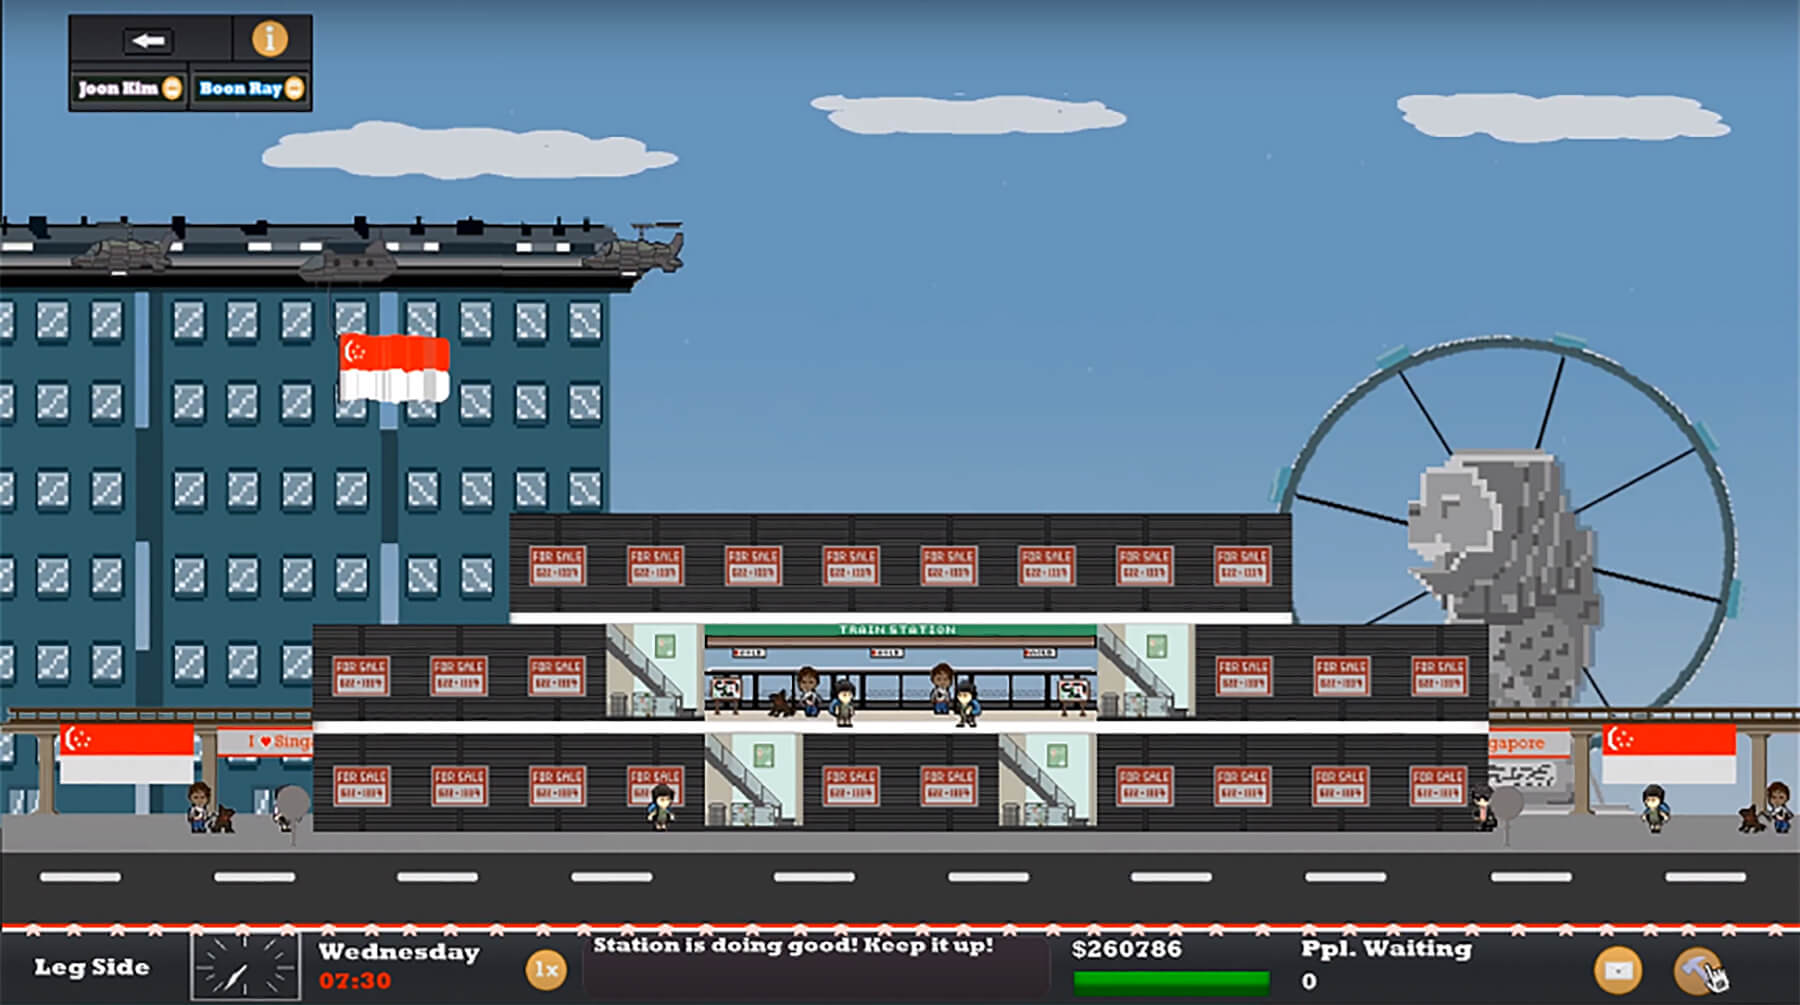 Metro Maniac game screenshot shows a side view of a metro station.